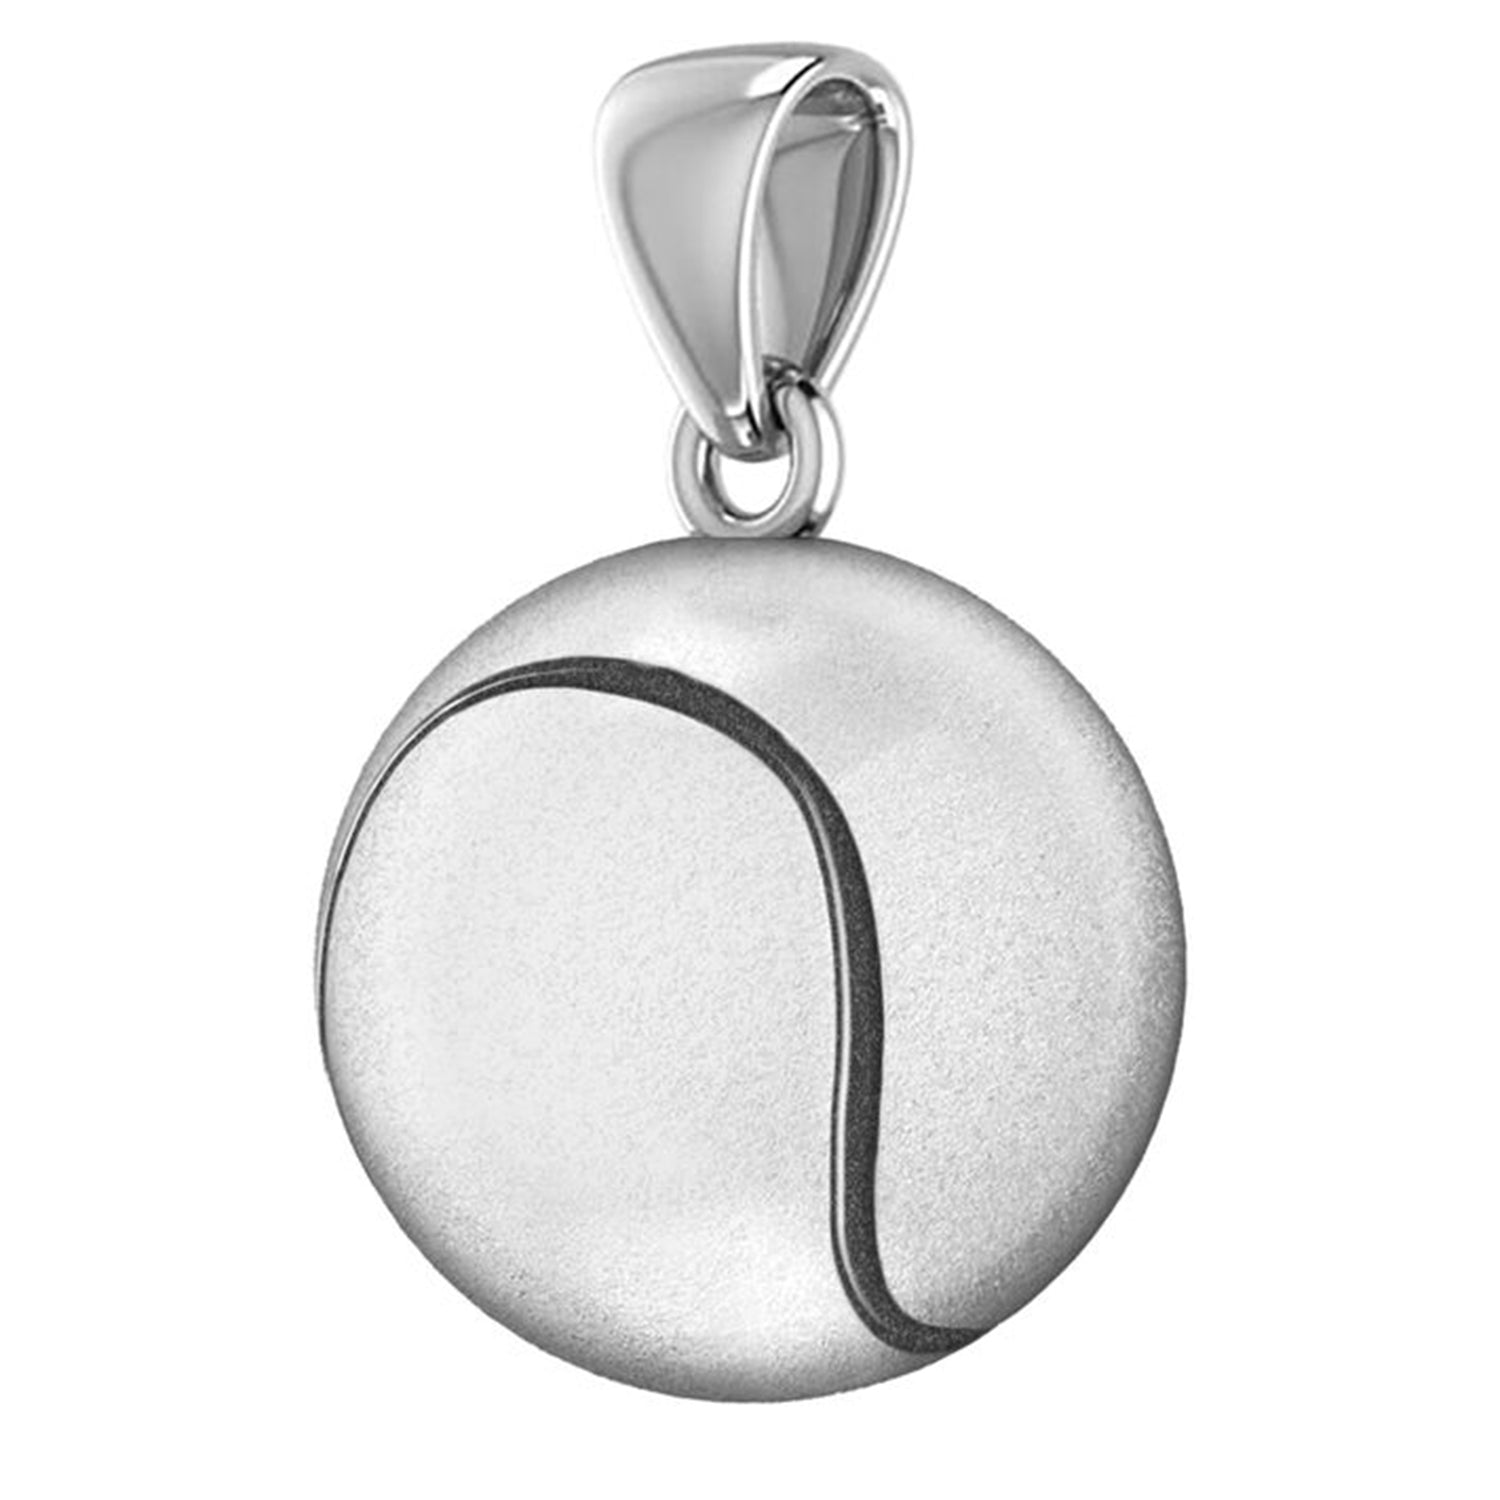 Tennis Ball Necklace In Sterling Silver - Pendant Only